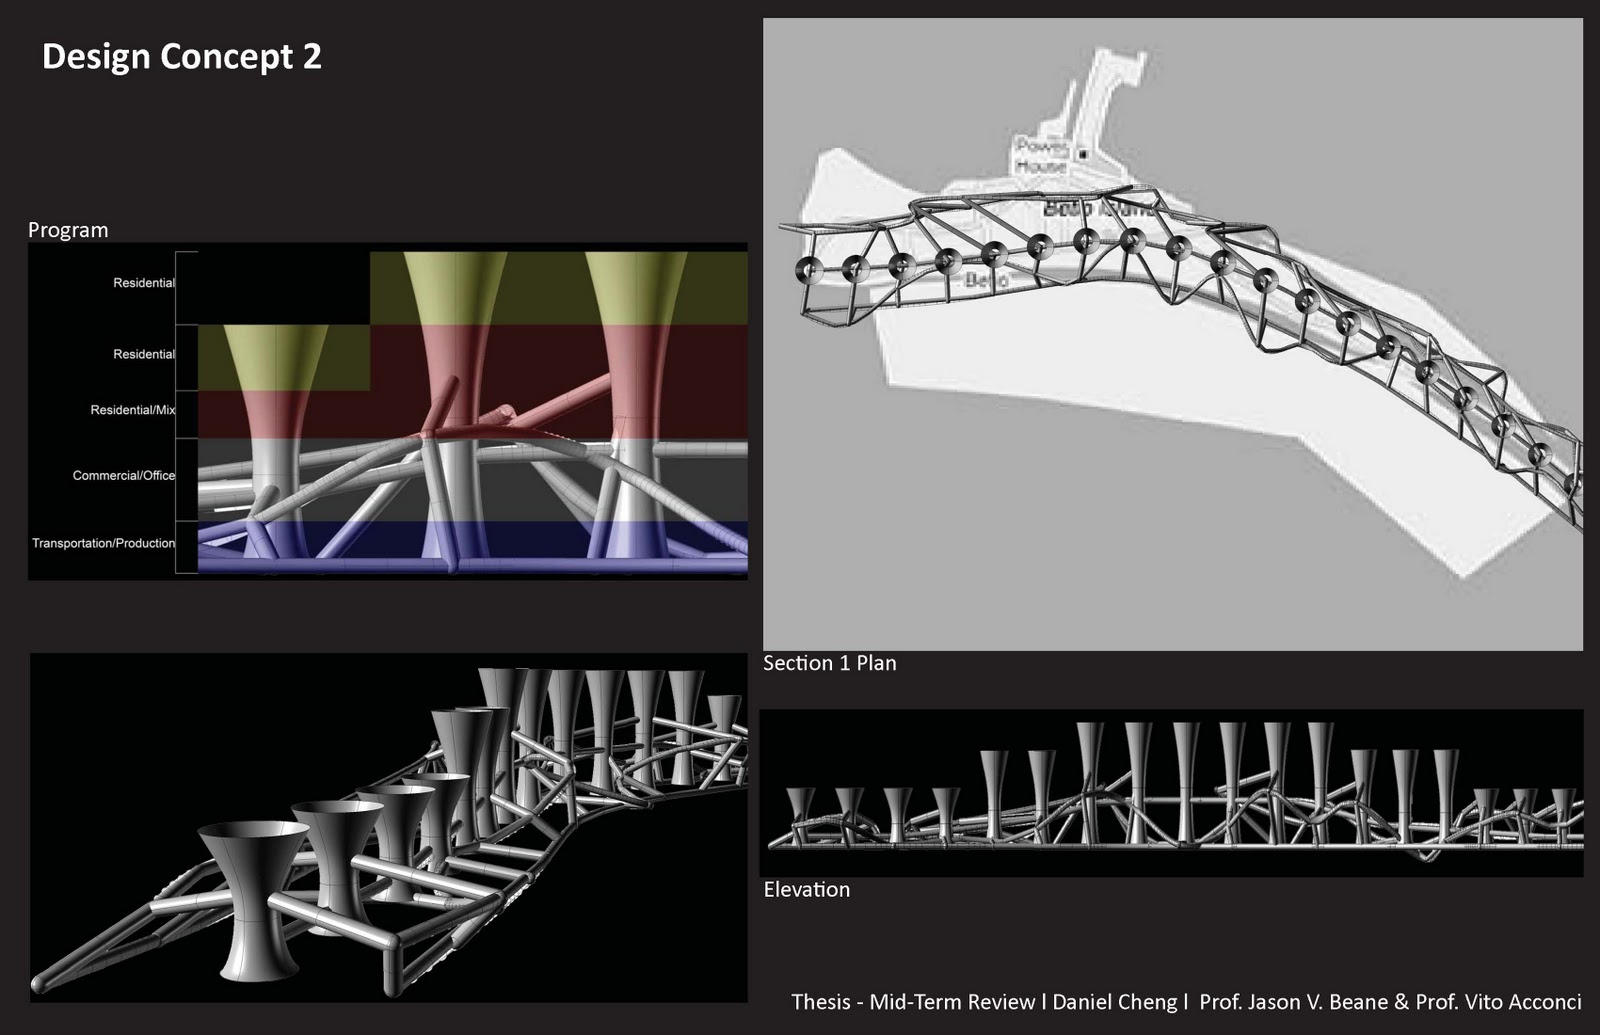 pratt architecture thesis Opera, venice, italy, architecture, and acoustics abstract the examples of opera houses in the following chapters demonstrate developments and changes in opera house design that improved acoustics through their use of varied materials, interior decorations, and differing ground plans.